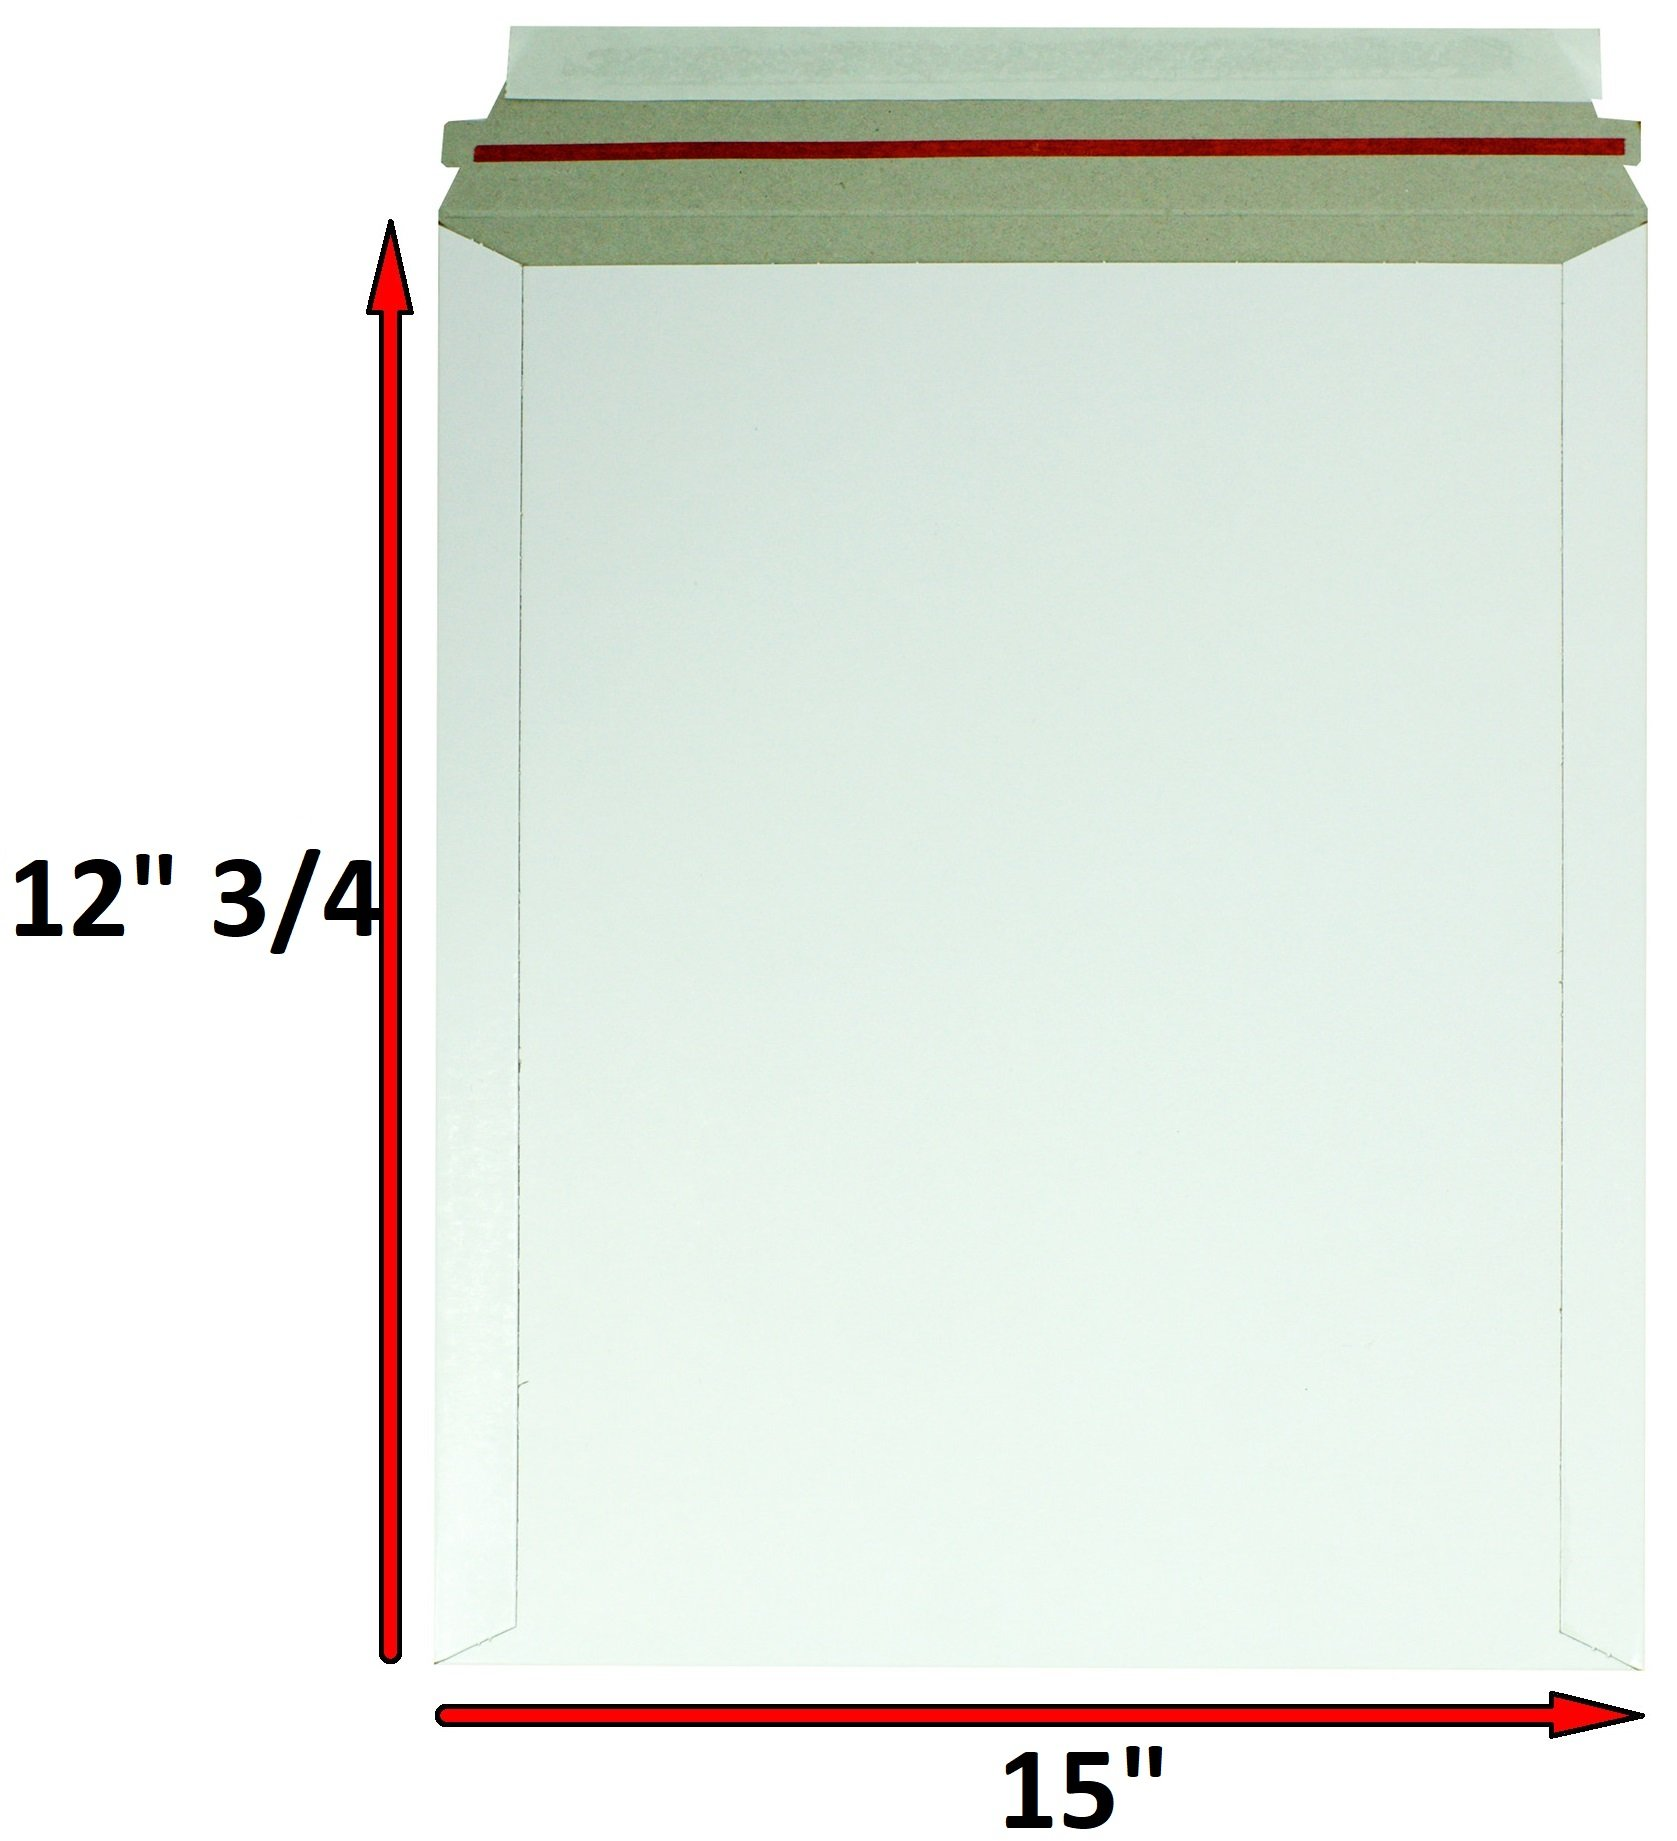 Rigid Mailers 12.75 x 15 Paperboard mailers 12 3/4 x 15 by Amiff. Pack of 10 white photo mailers. Stay Flat mailers. No bend, Self sealing. Documents cardboard envelopes. Mailing, shipping, packaging.